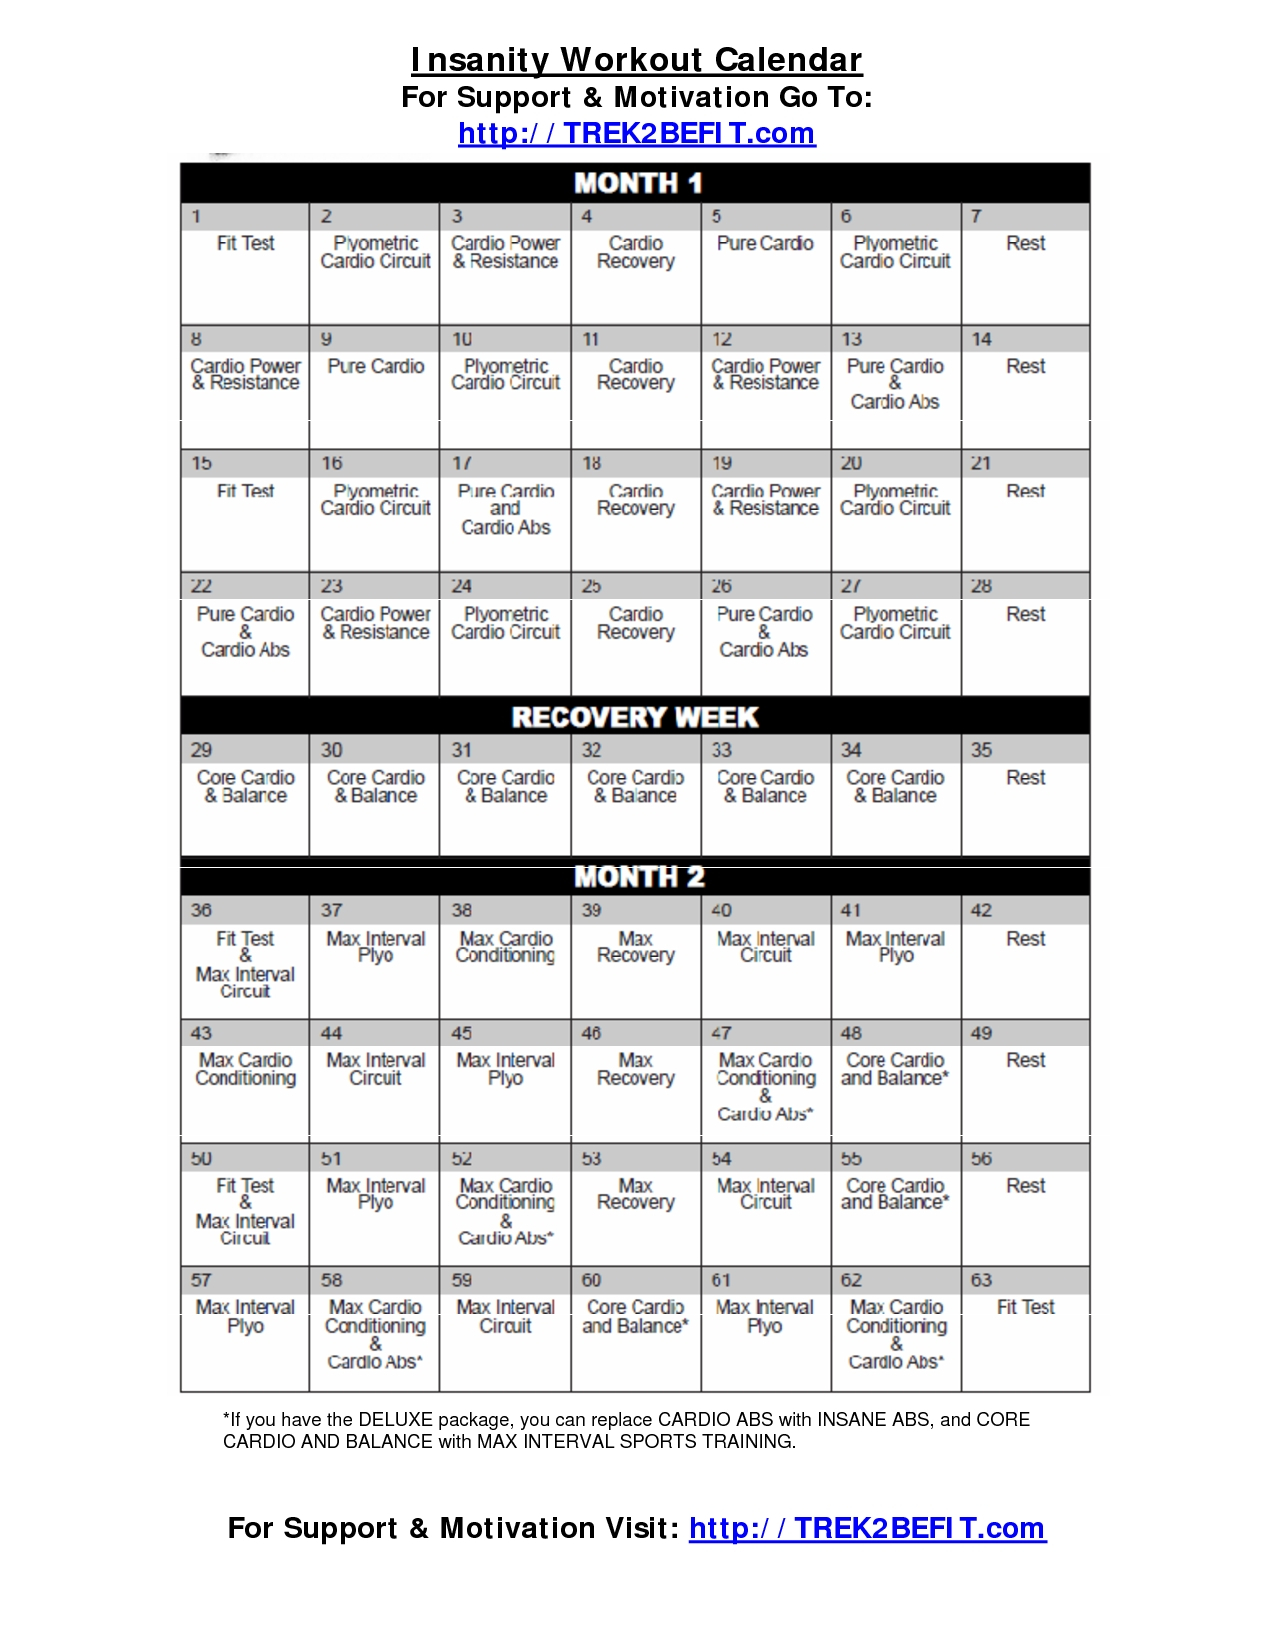 Hip Hop Abs Schedule Printable | Calendar Template 2020 intended for Hip Hop Abs Schedule